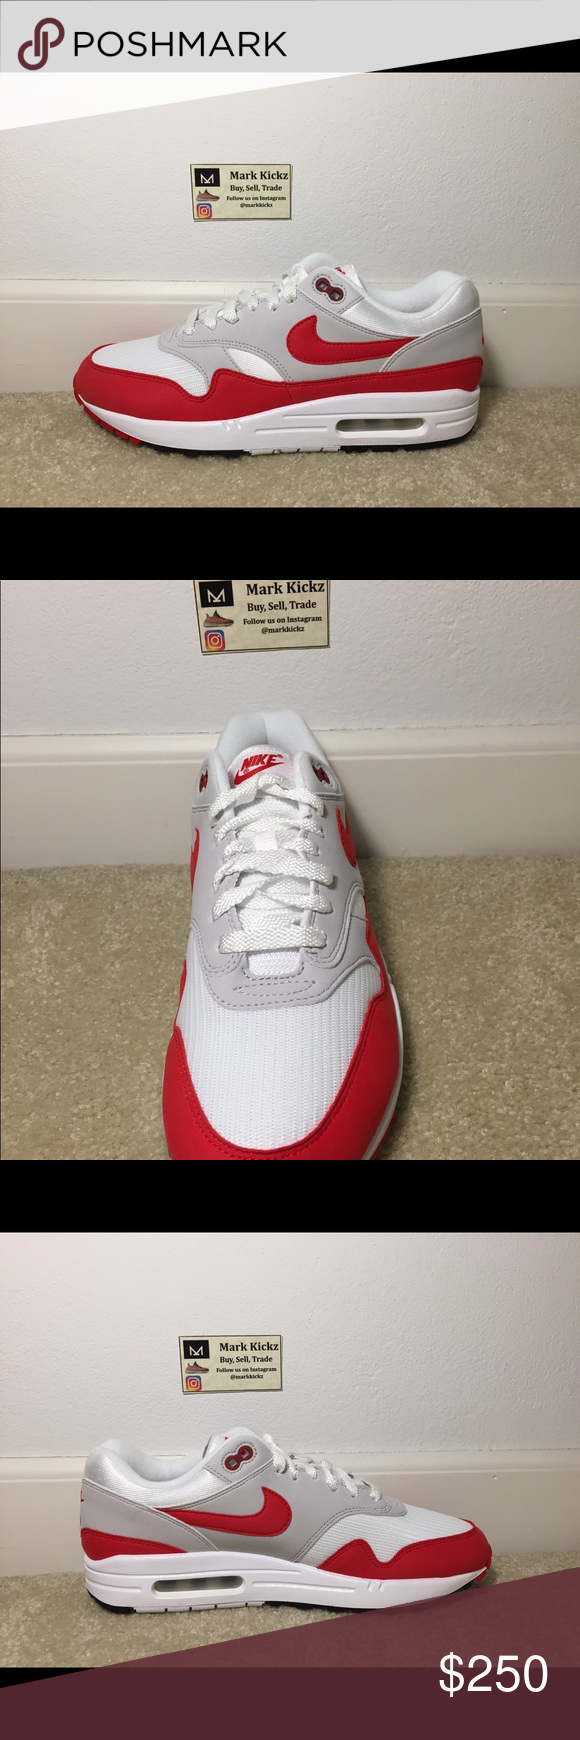 eea4541e107f Nike Air Max 1 OG Anniversary 2017 size 9 Nike Air Max 1 OG Anniversary 2017  Size 9 Brand New (DS) Follow me on Instagram -  markkickz Trades accepted  DM ME ...